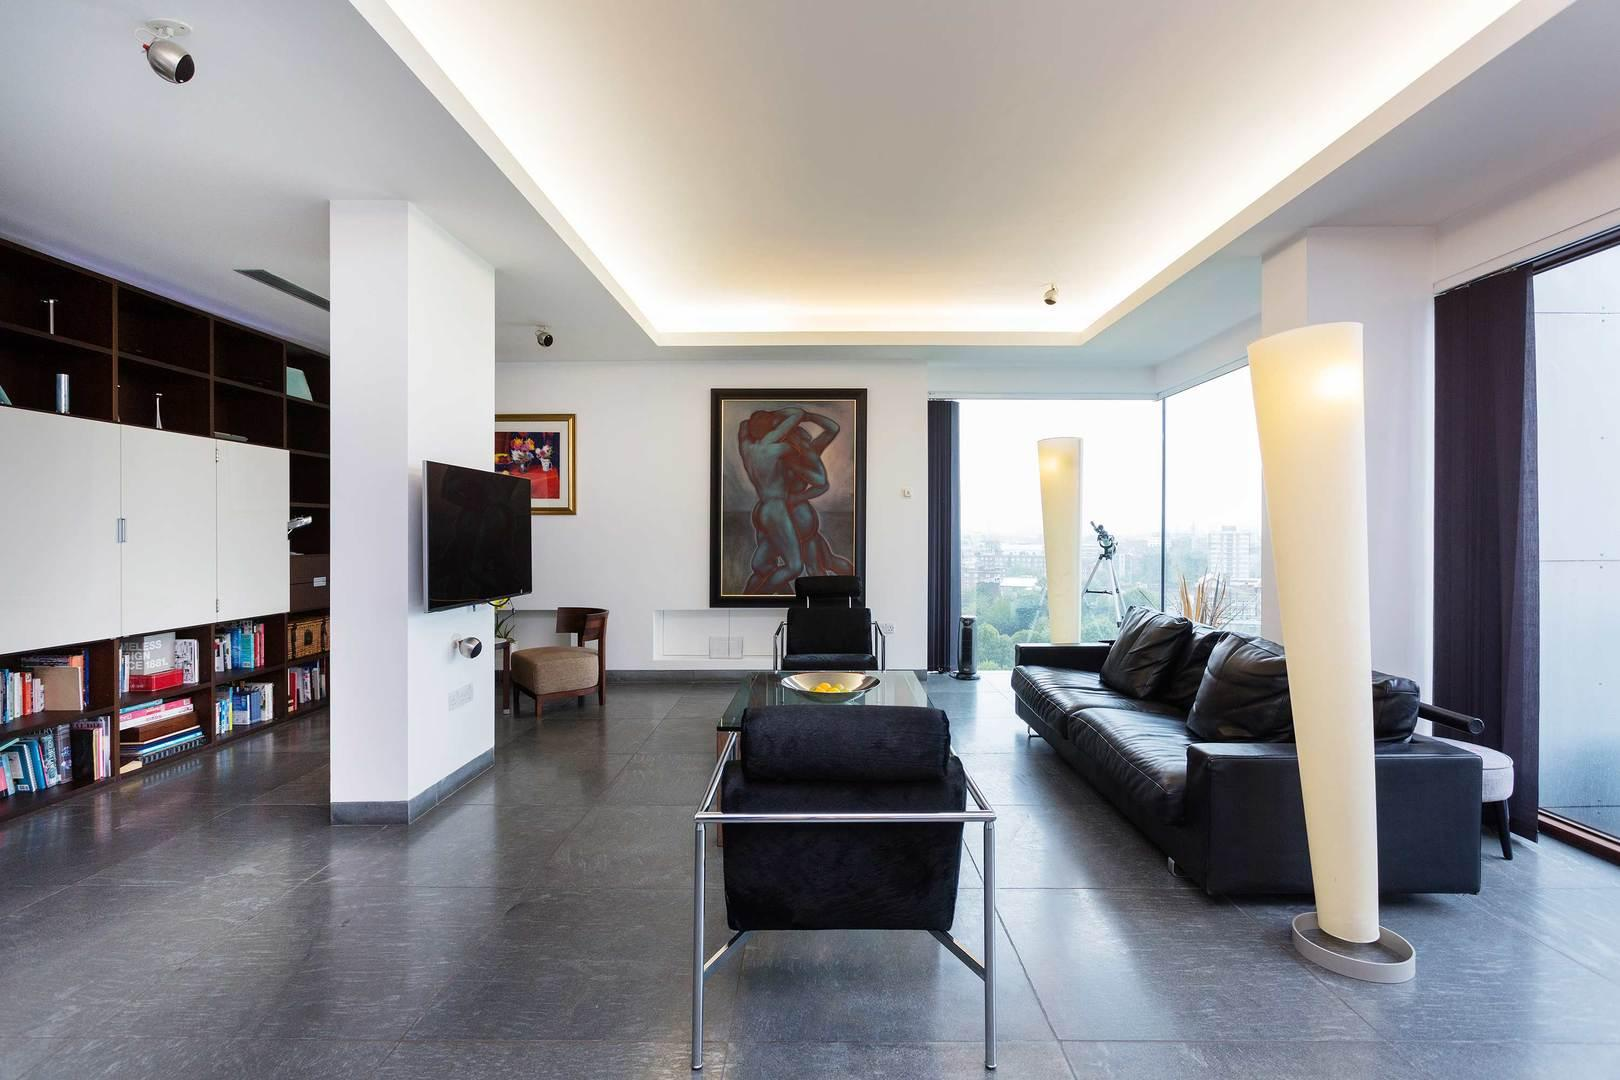 Property Image 2 - Superb Hoxton Penthouse with Astonishing Views over London